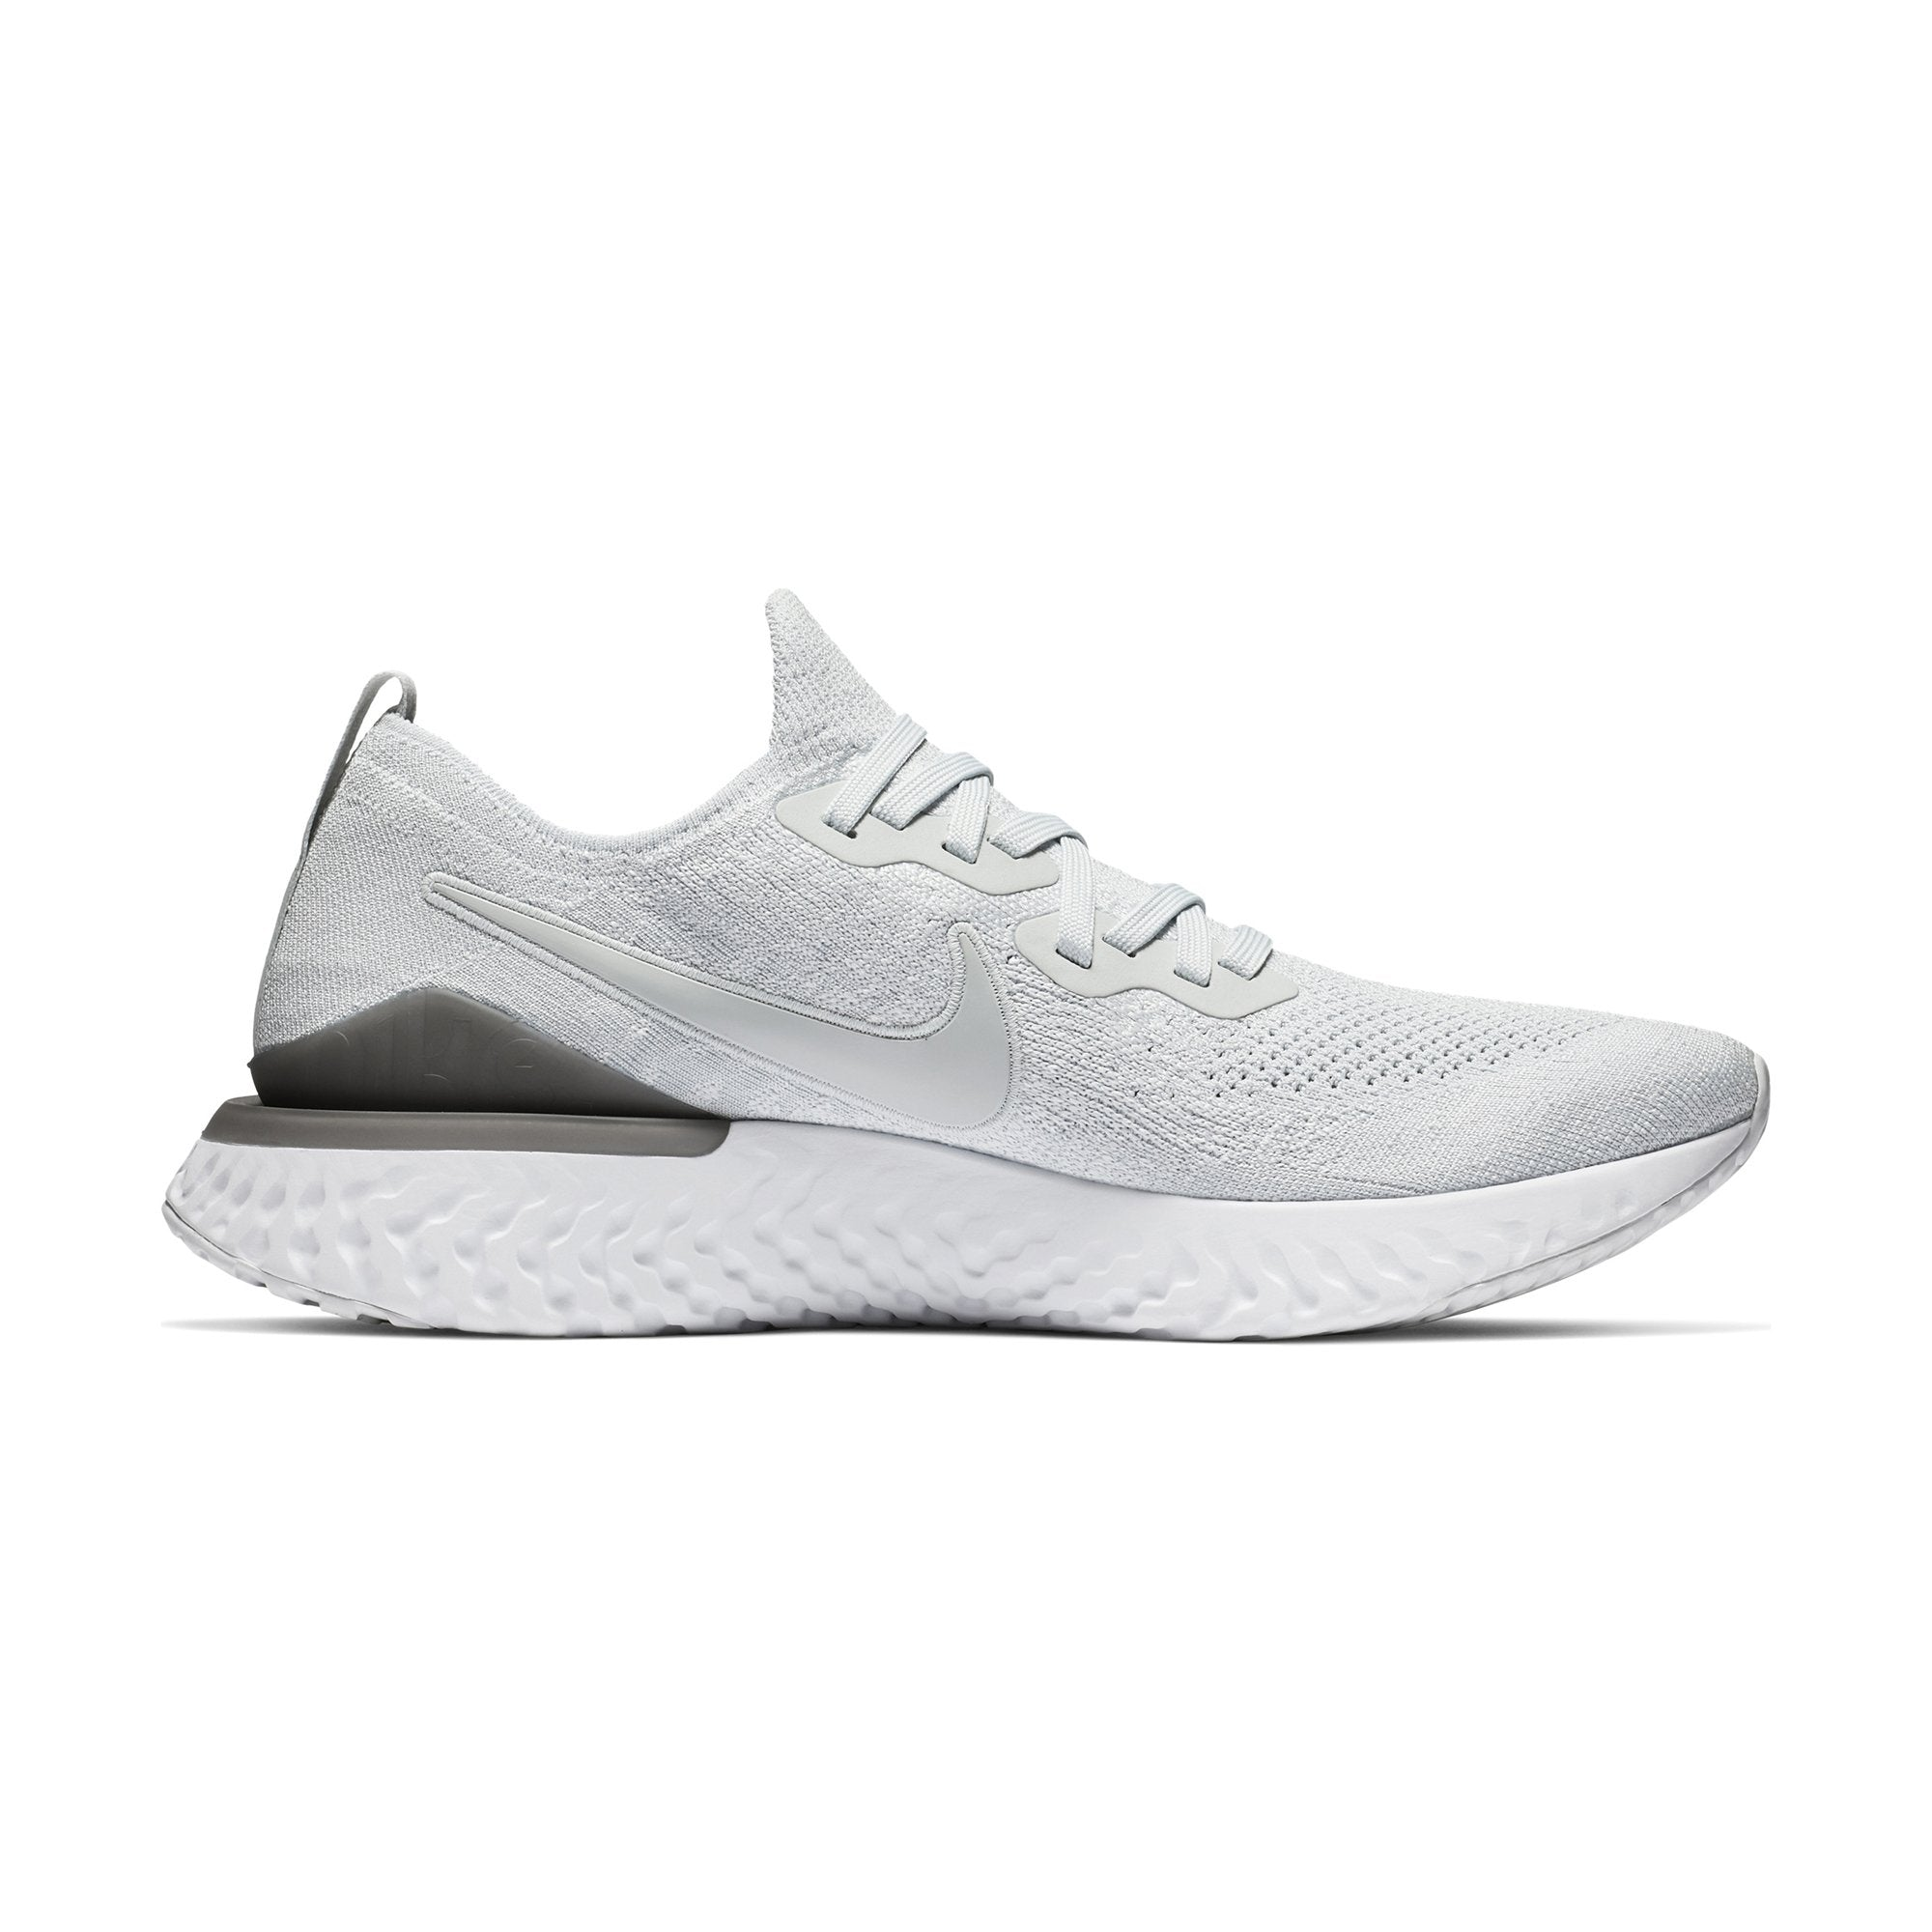 a4ad92624793 Buy nike men epic react flyknit running shoes pure platinum gunsmoke online  in singapore royal sporting